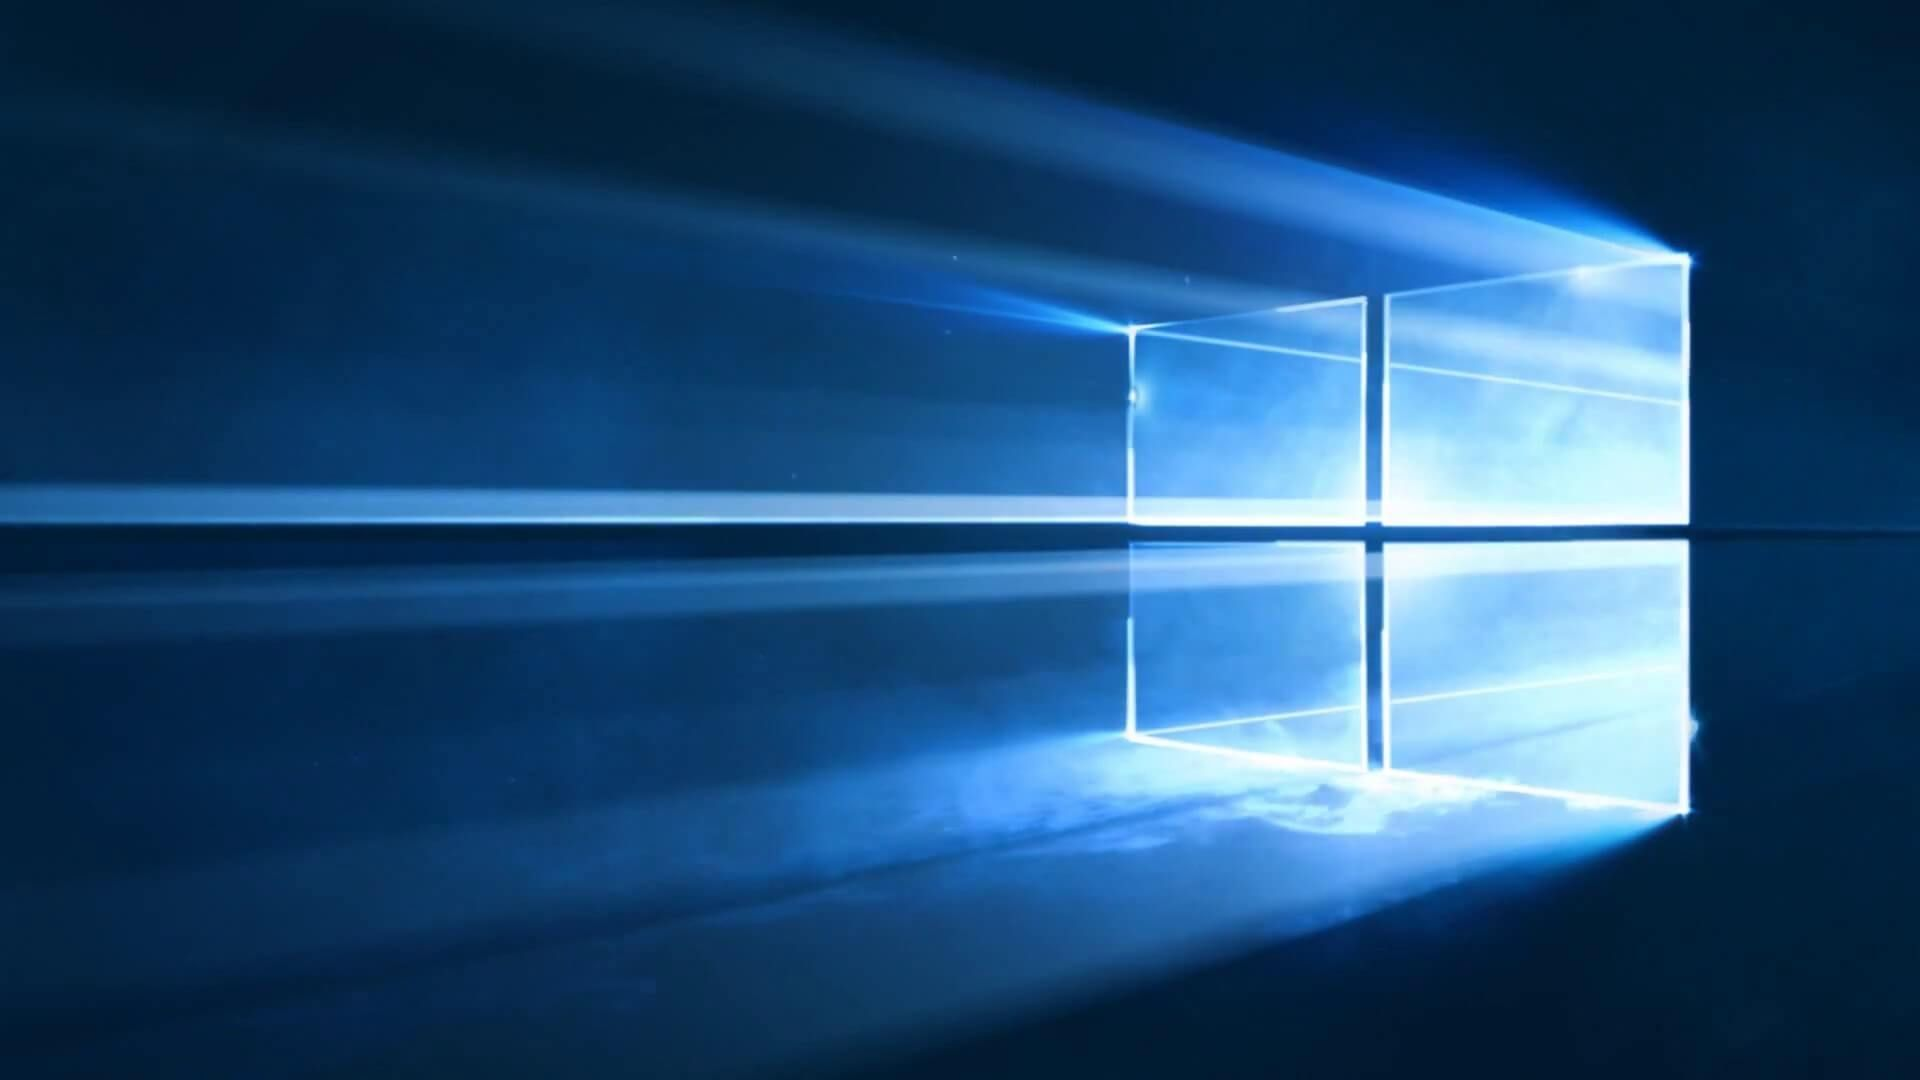 Windows Span computer background